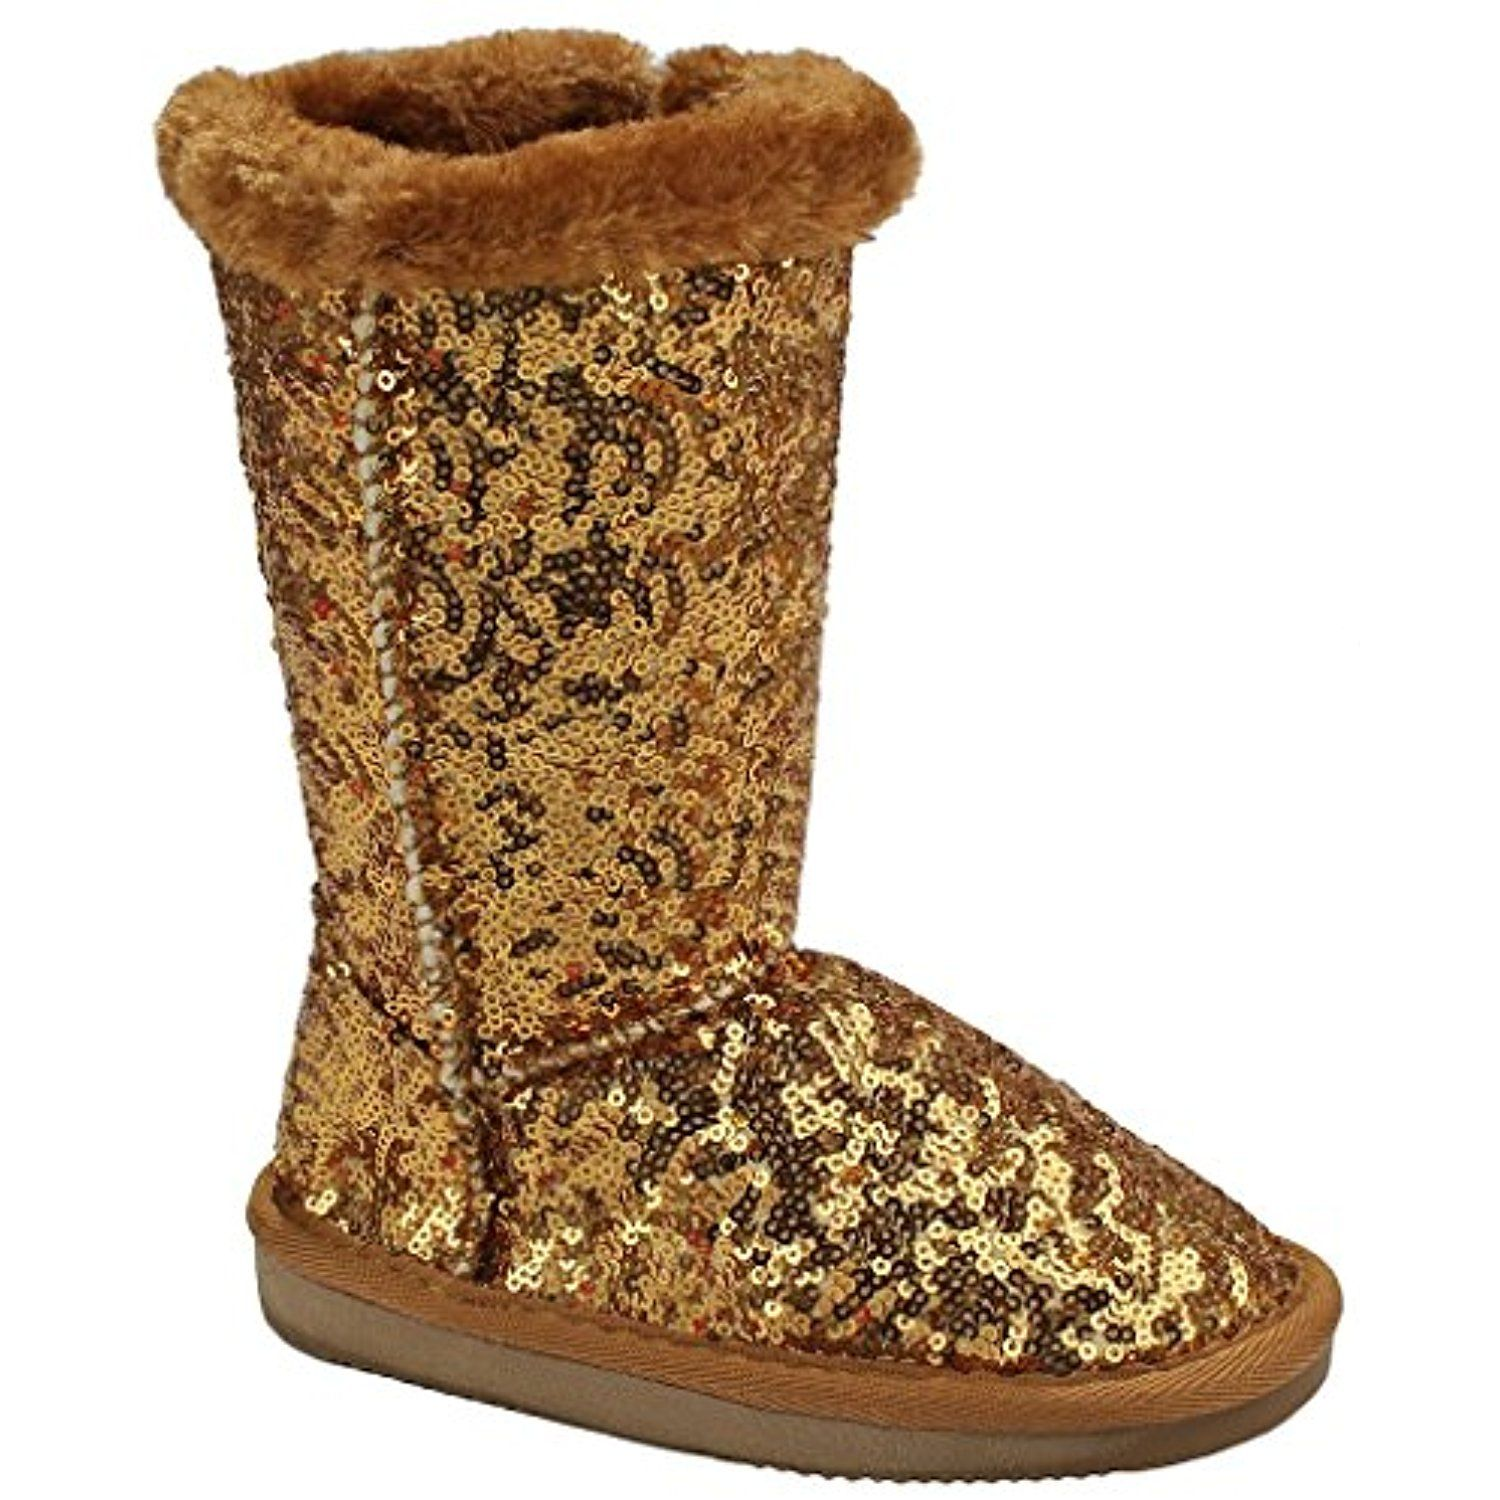 Women Aling47 Glitter Mesh Faux Fur Lined Shearling Mid Calf Winter Boots